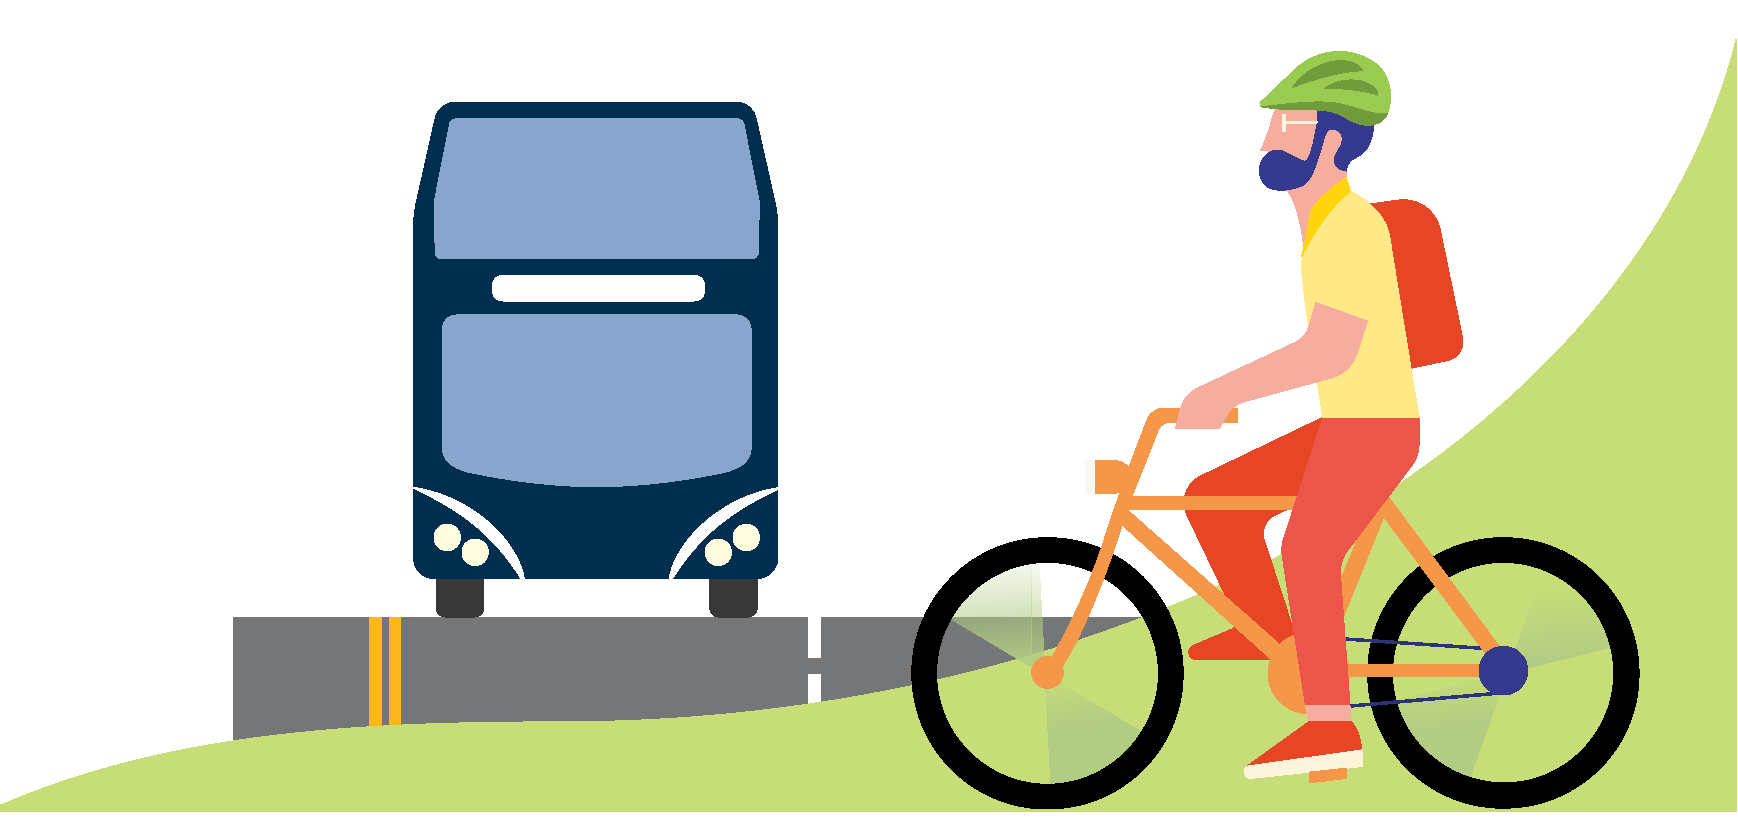 Illustration of a bus and a person riding a bicycle.